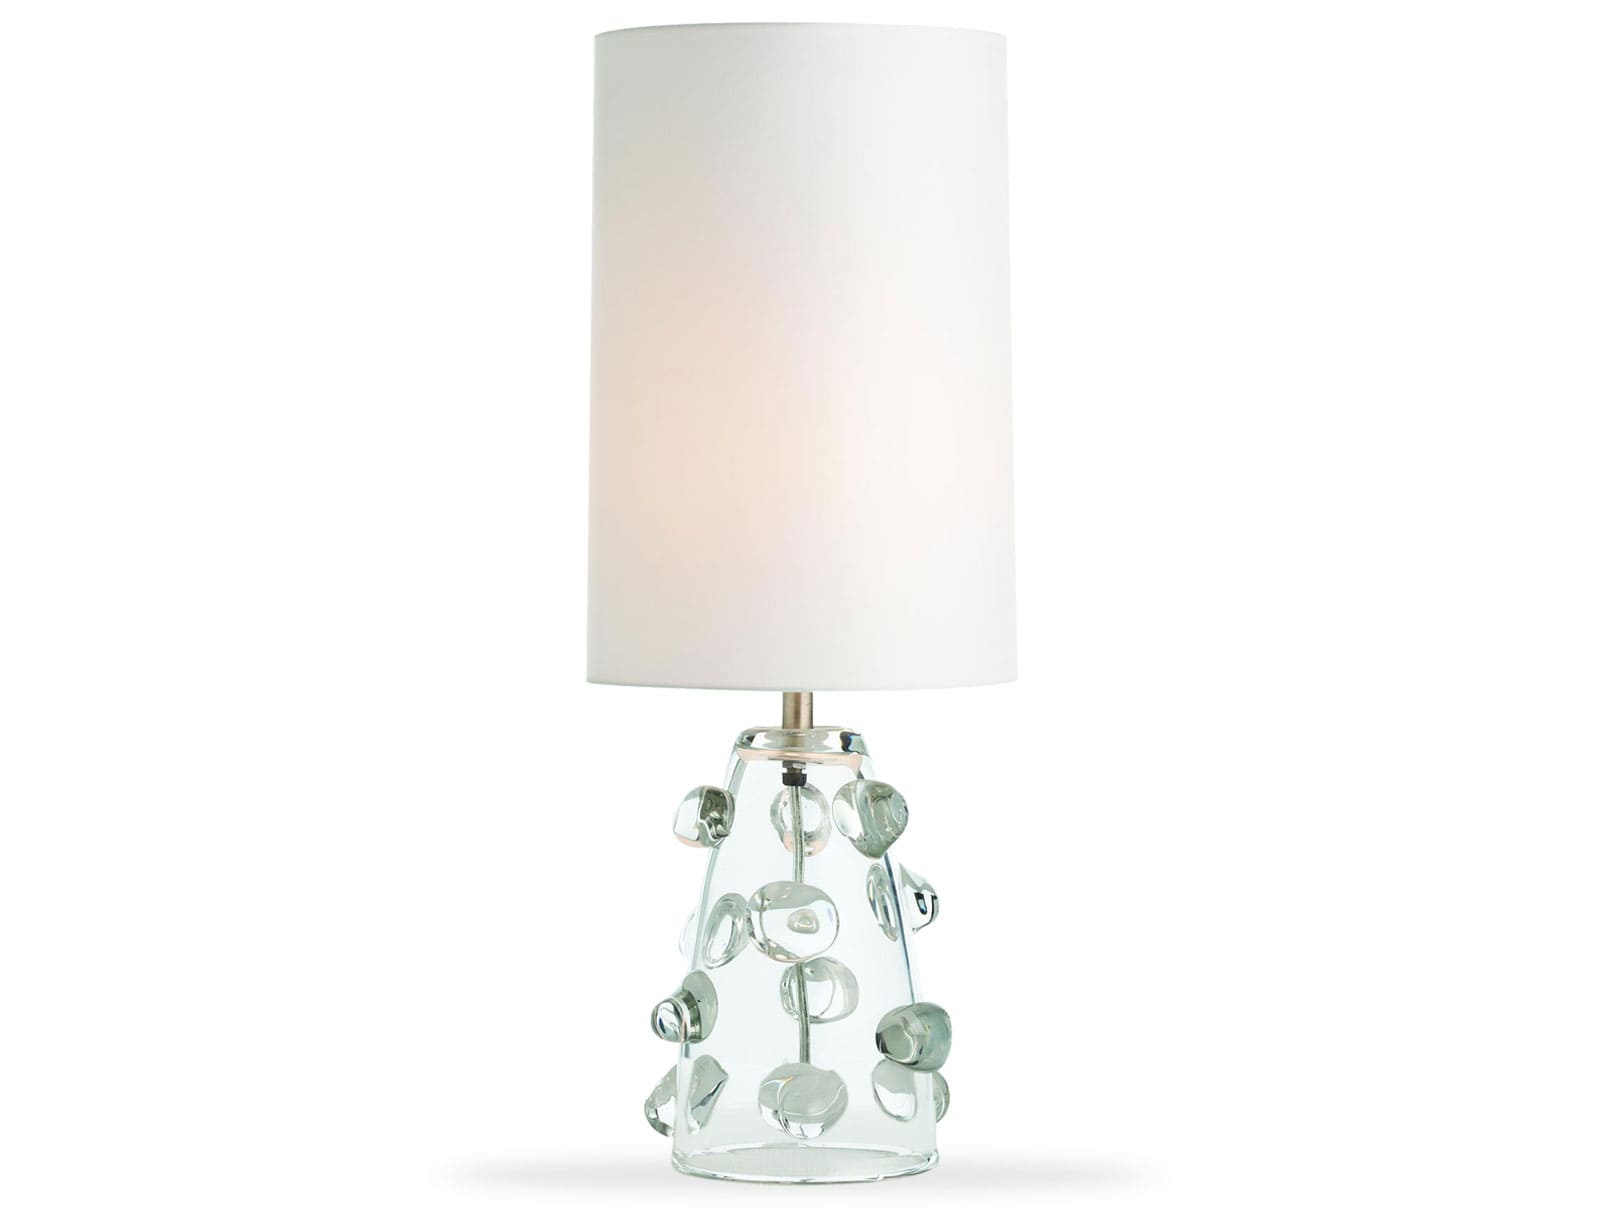 Arteriors Poppy Glass Table Lamp Clearance Sale